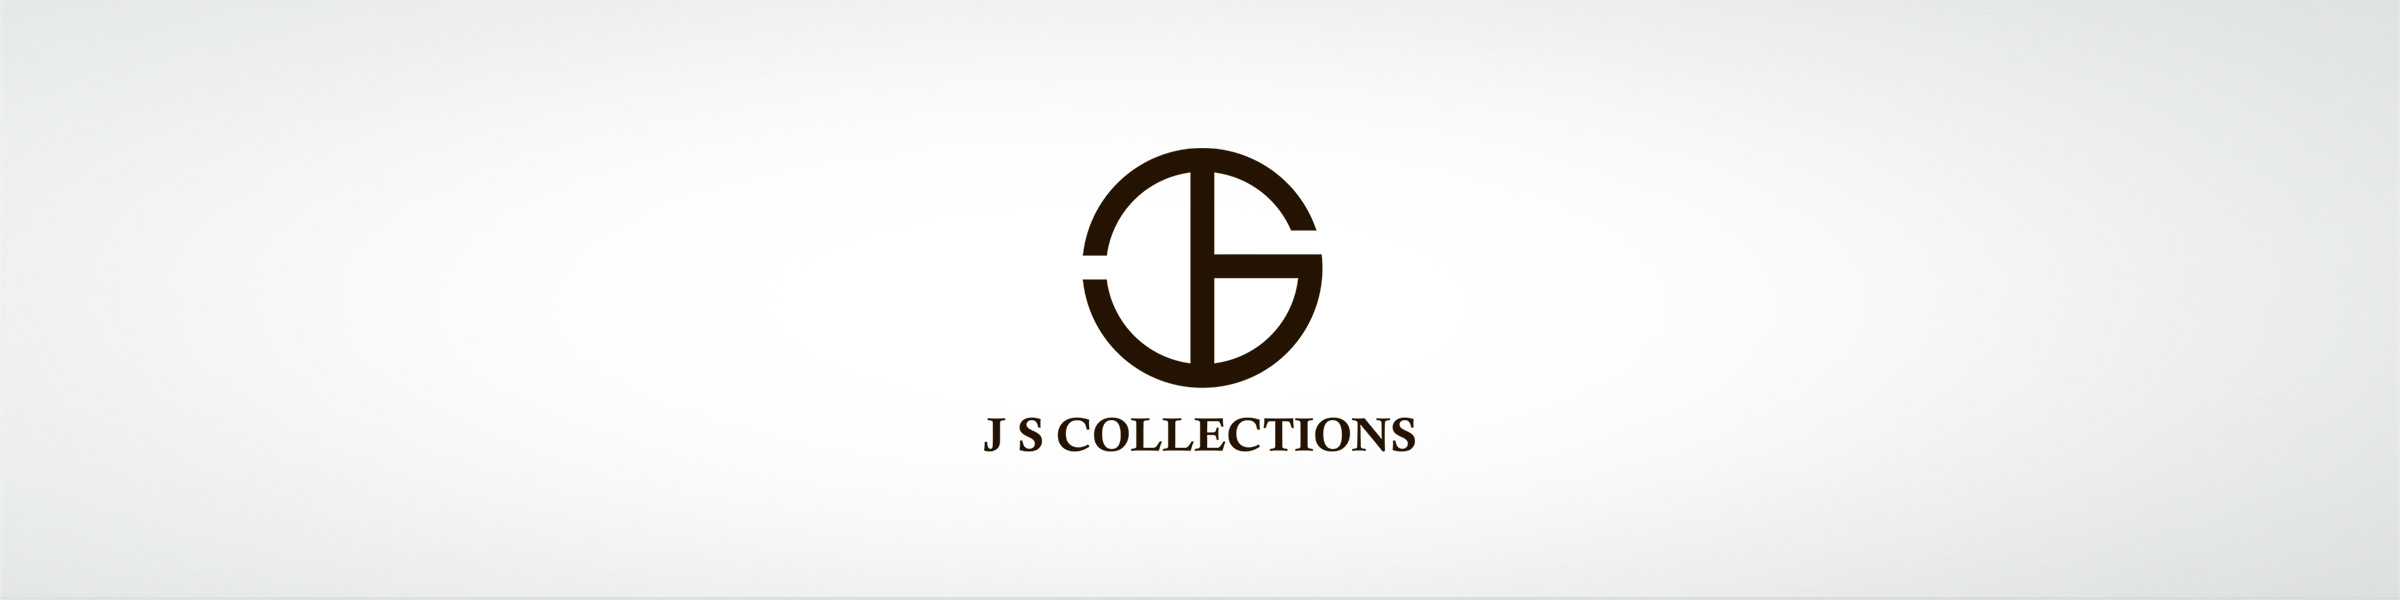 032222 JS COLLECTIONS